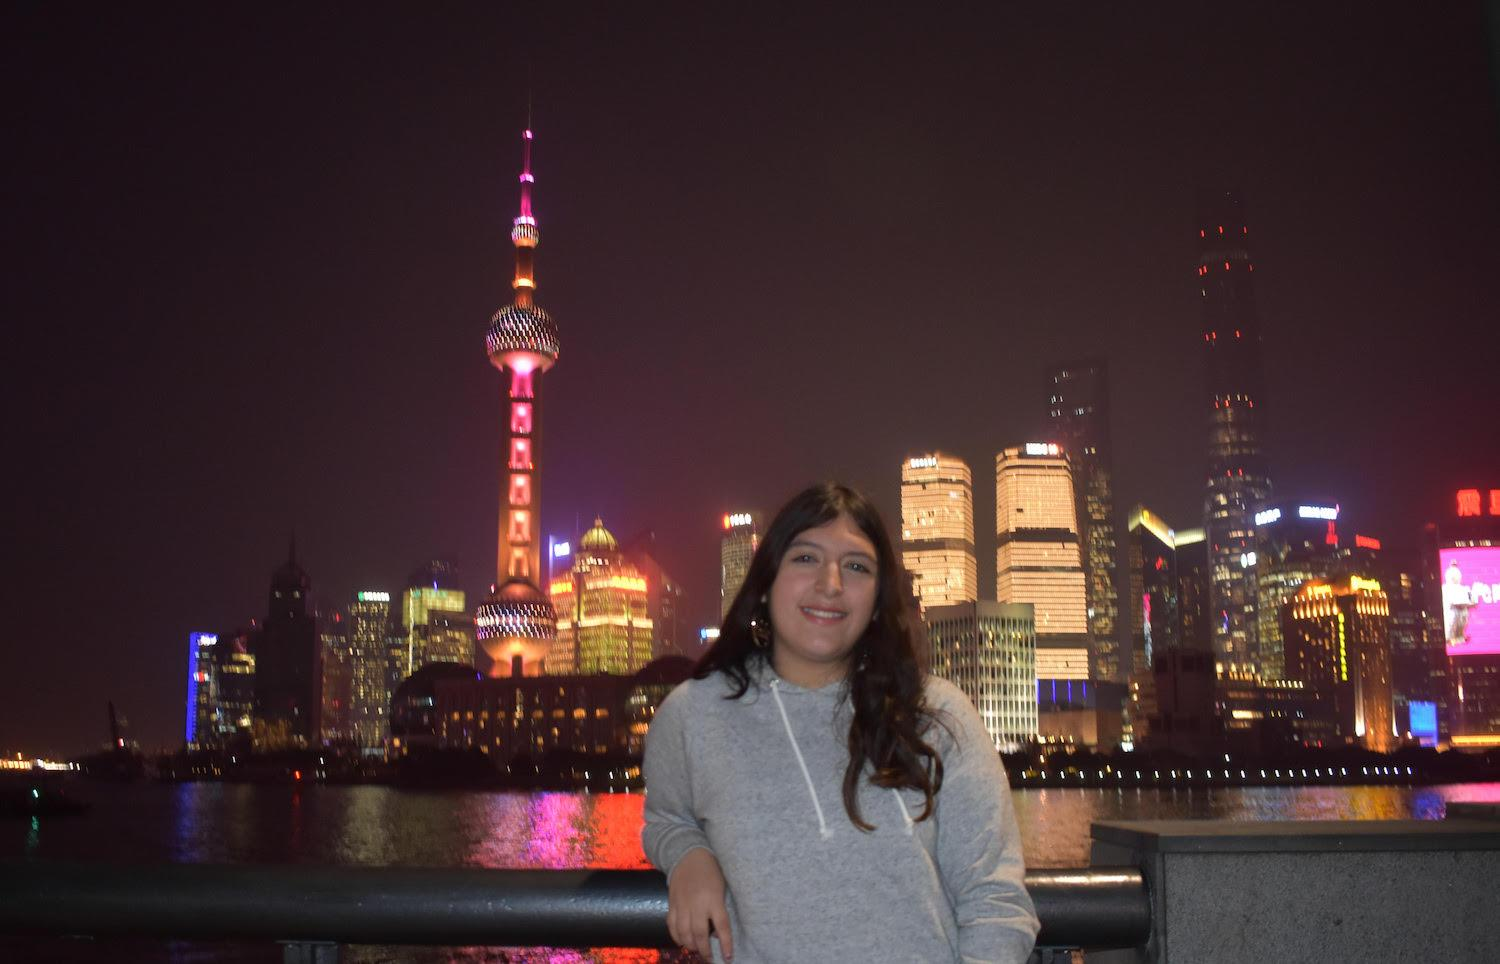 Elizabeth Gonzales with the nighttime Shanghai skyline in the background